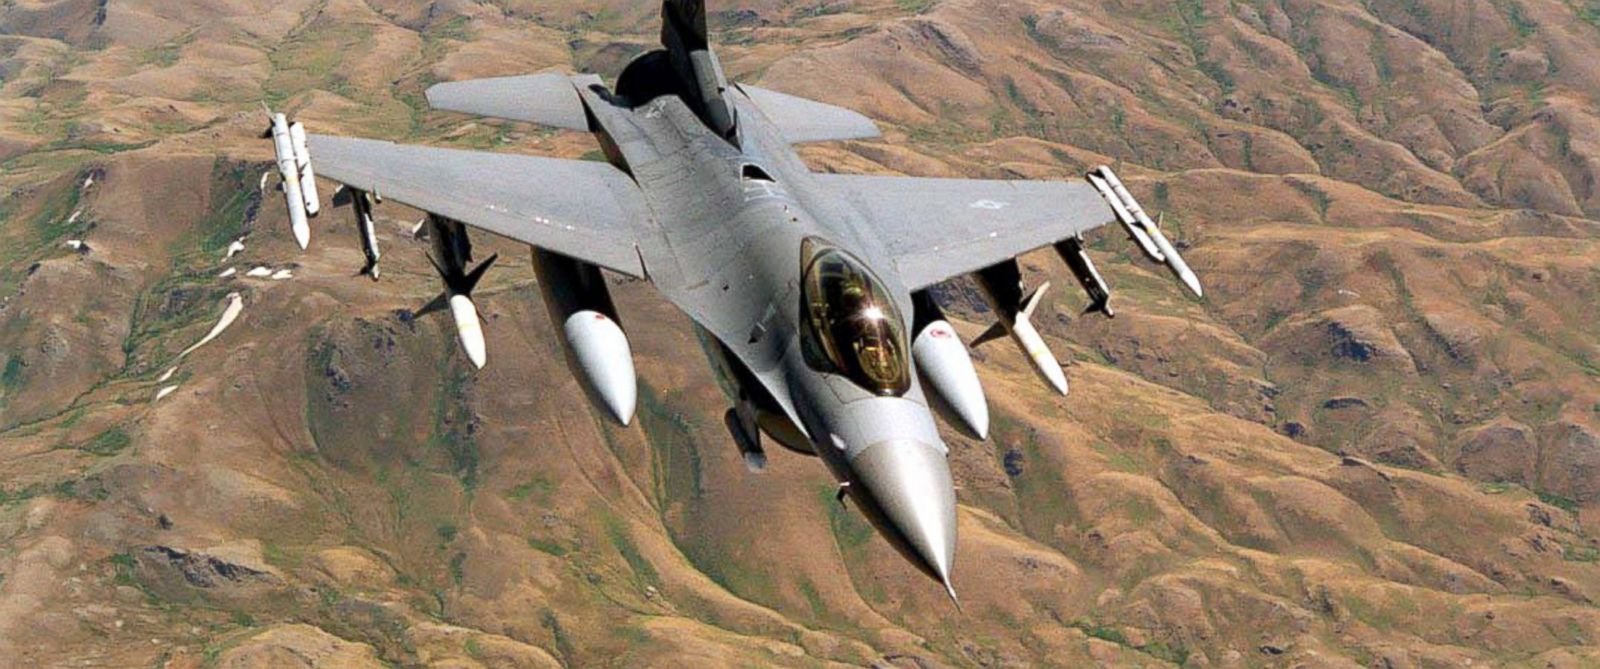 """PHOTO: This undated file image shows a U.S. Air Force F-16 on patrol over the """"No-Fly Zone"""" in Northern Iraq."""